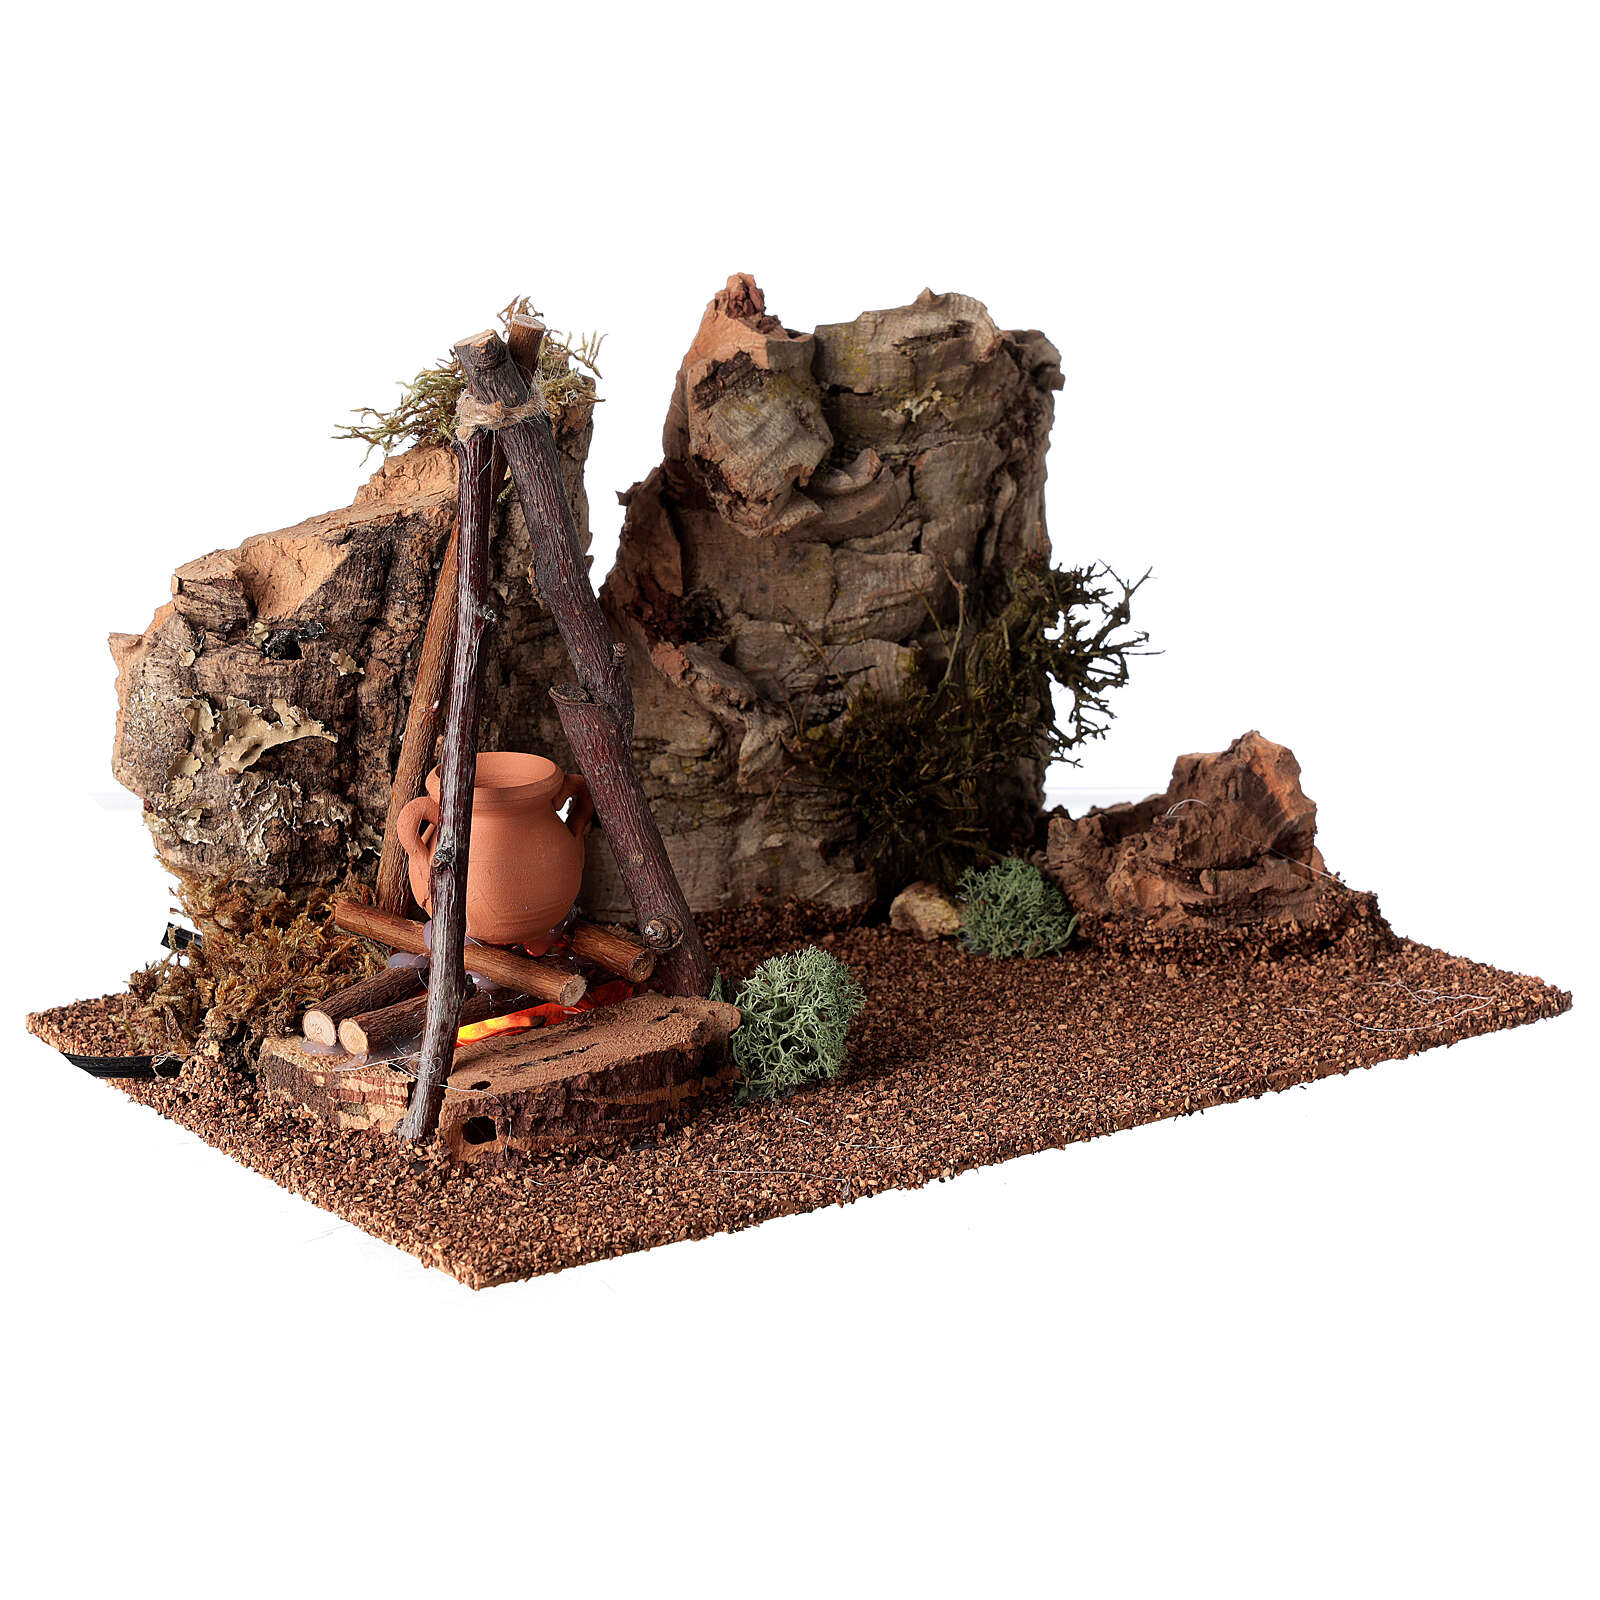 Bivouac setting with flame effect for Nativity scene 12-14 cm 4